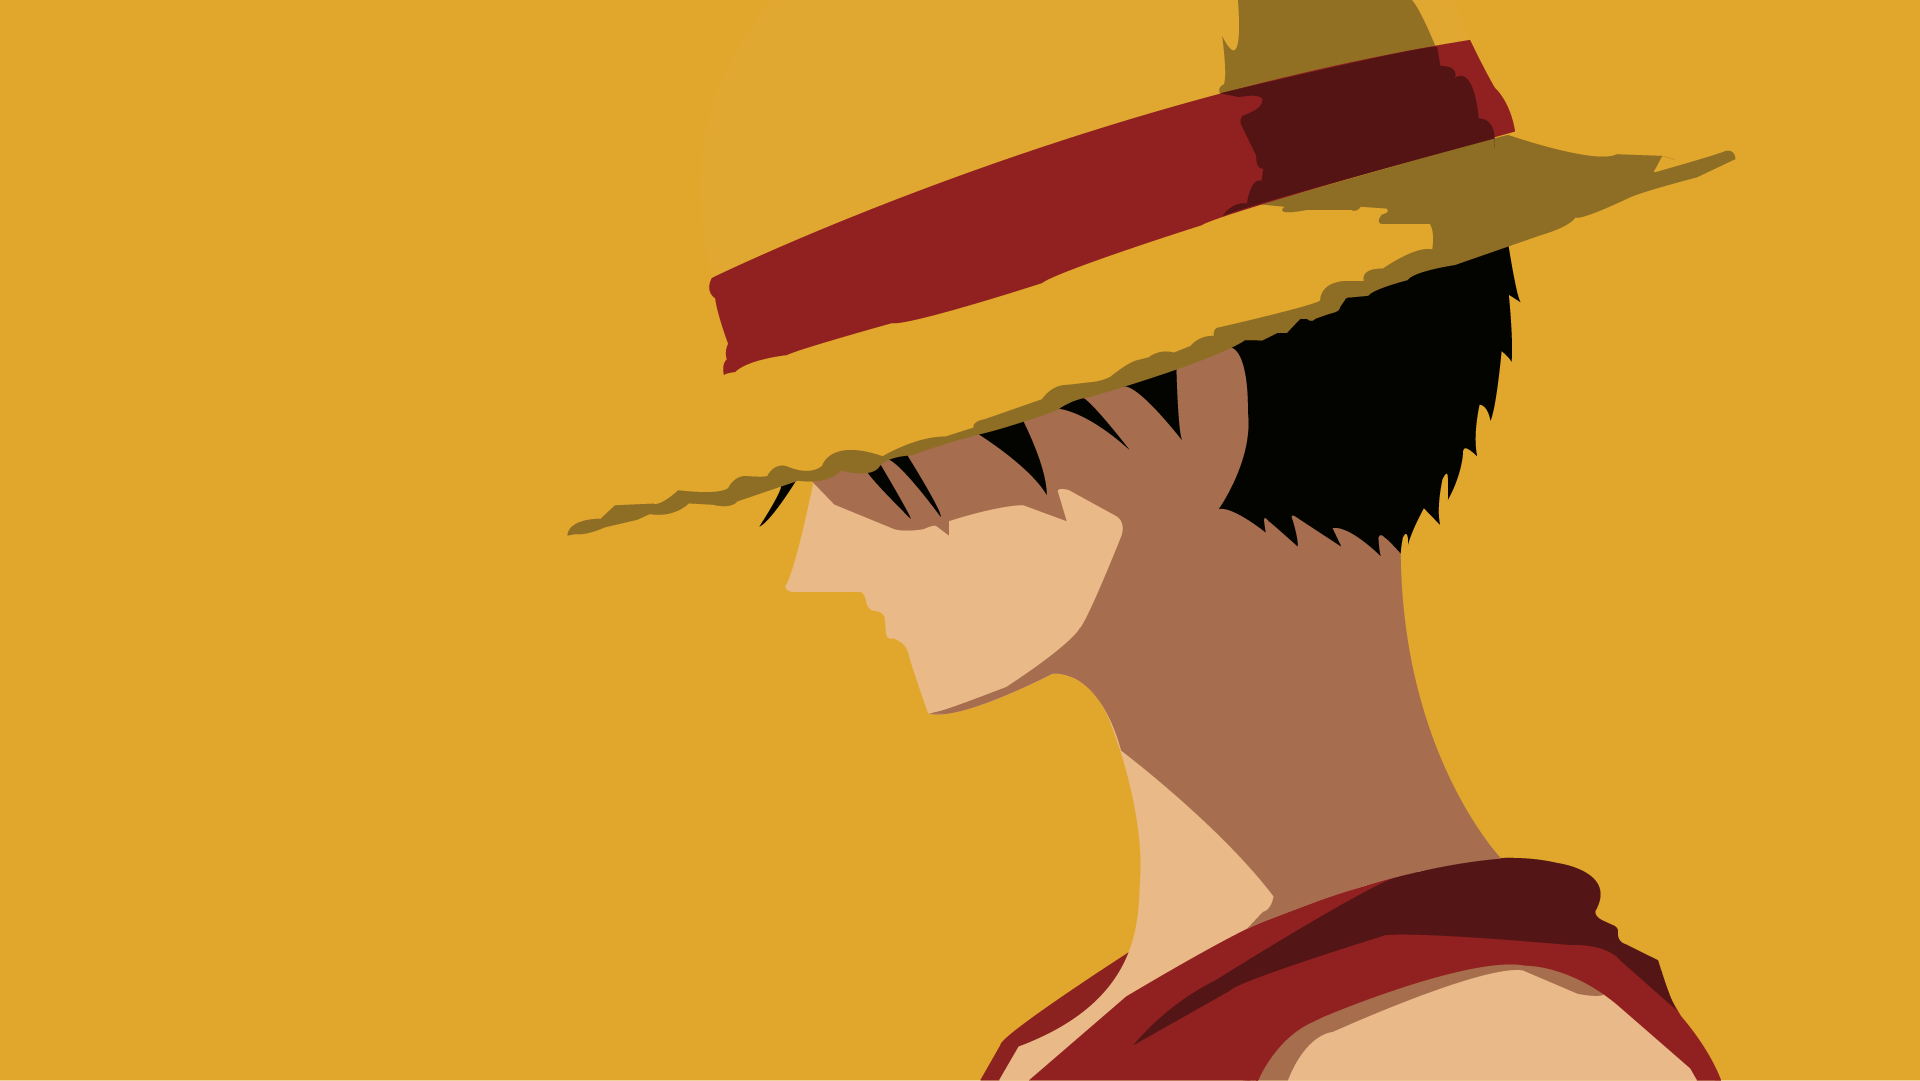 Luffy one piece by uzumakiash on deviantart for Minimalist art pieces